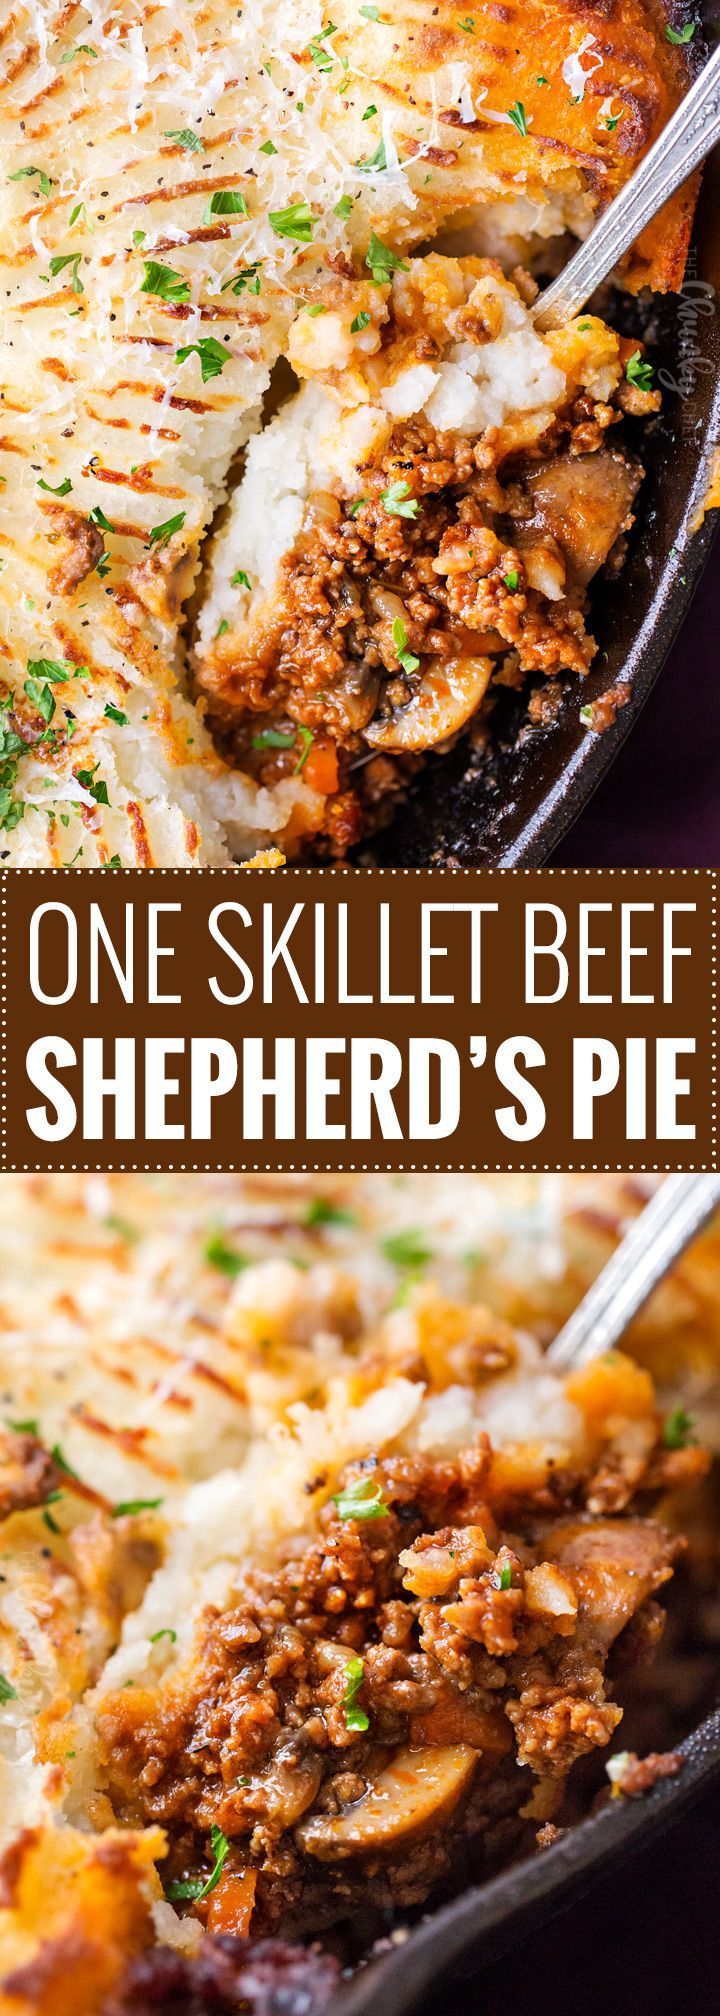 One Skillet Beef Shepherd's Pie Recipe: This rich and flavorful ground beef and vegetable mixture is topped with fluffy mashed potatoes and baked all in one skillet!